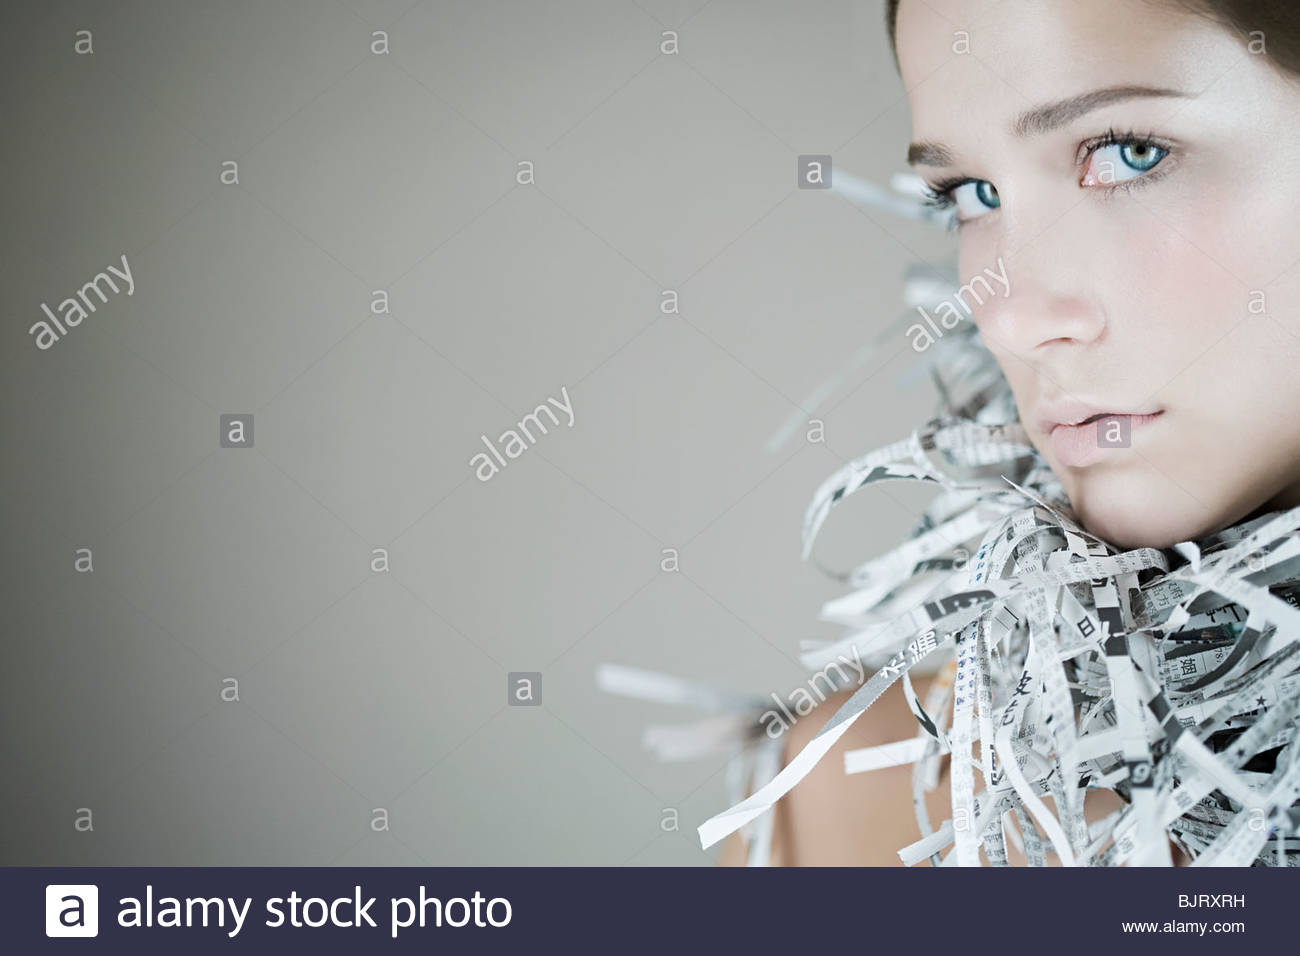 Portrait of a woman wearing a newspaper accessory - Stock Image